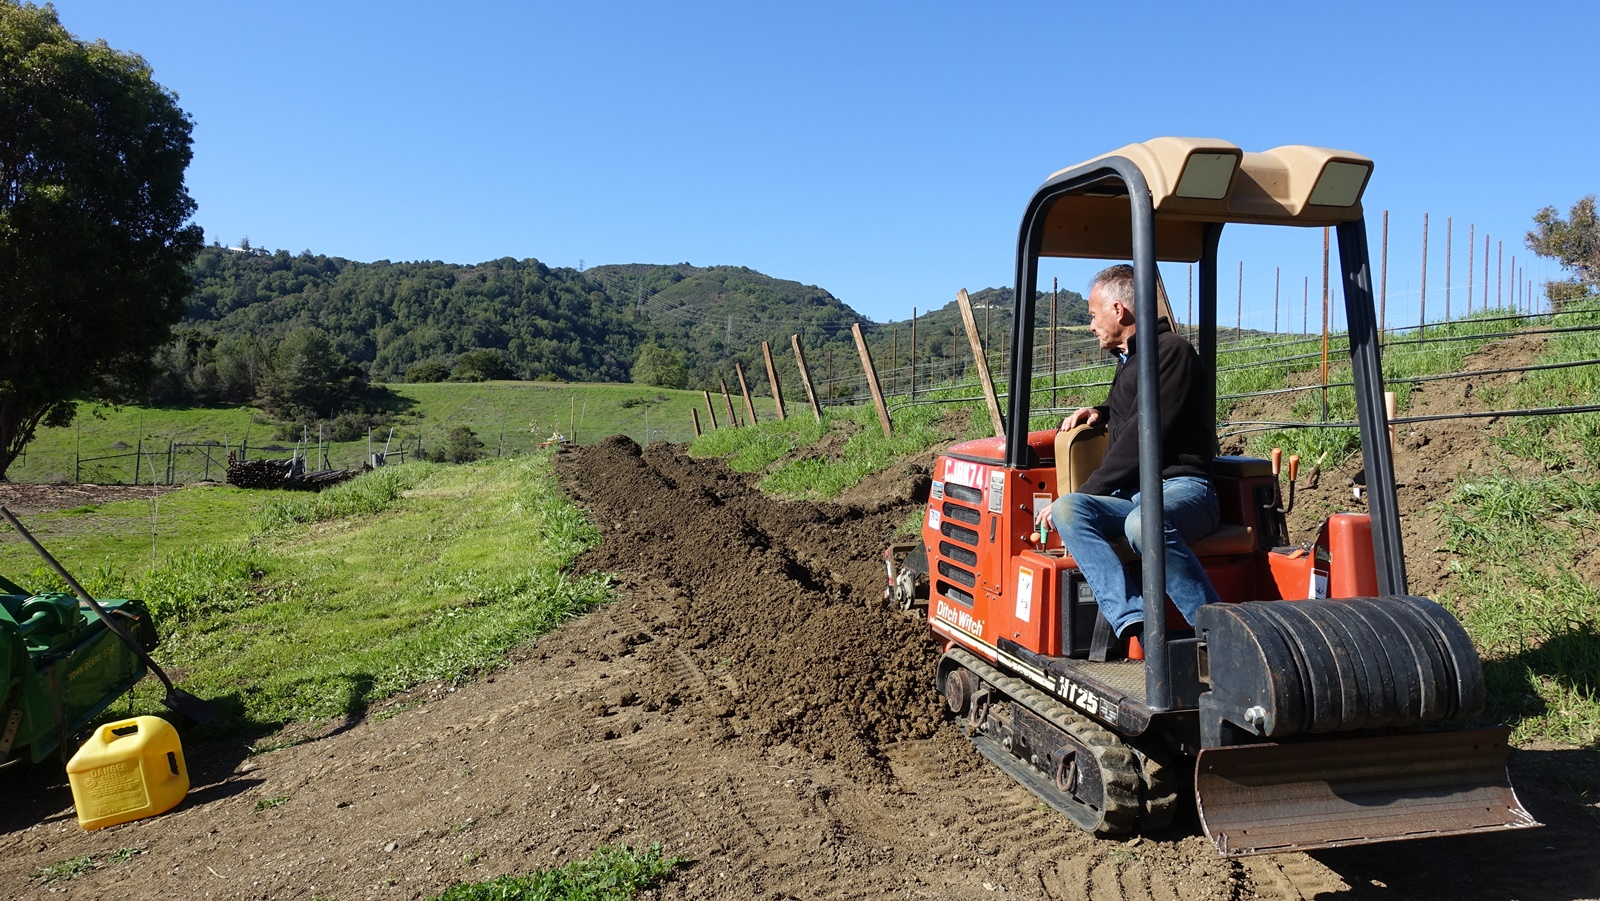 11. Digging irrigation ditches with Ditch Witch